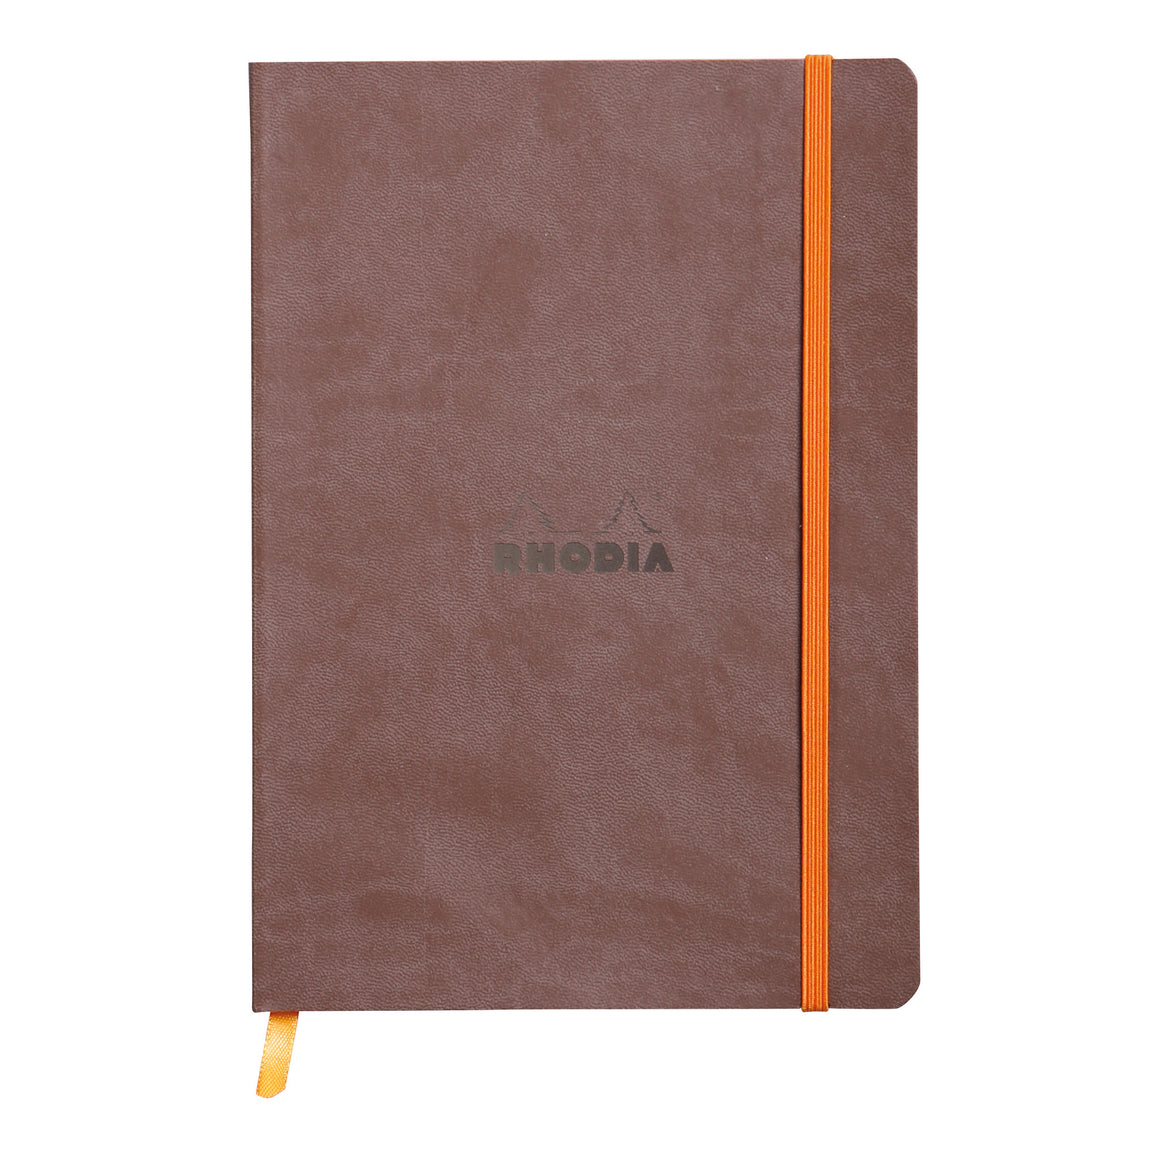 Rhodia Rhodiarama Softcover (A5) Notebook Chocolate